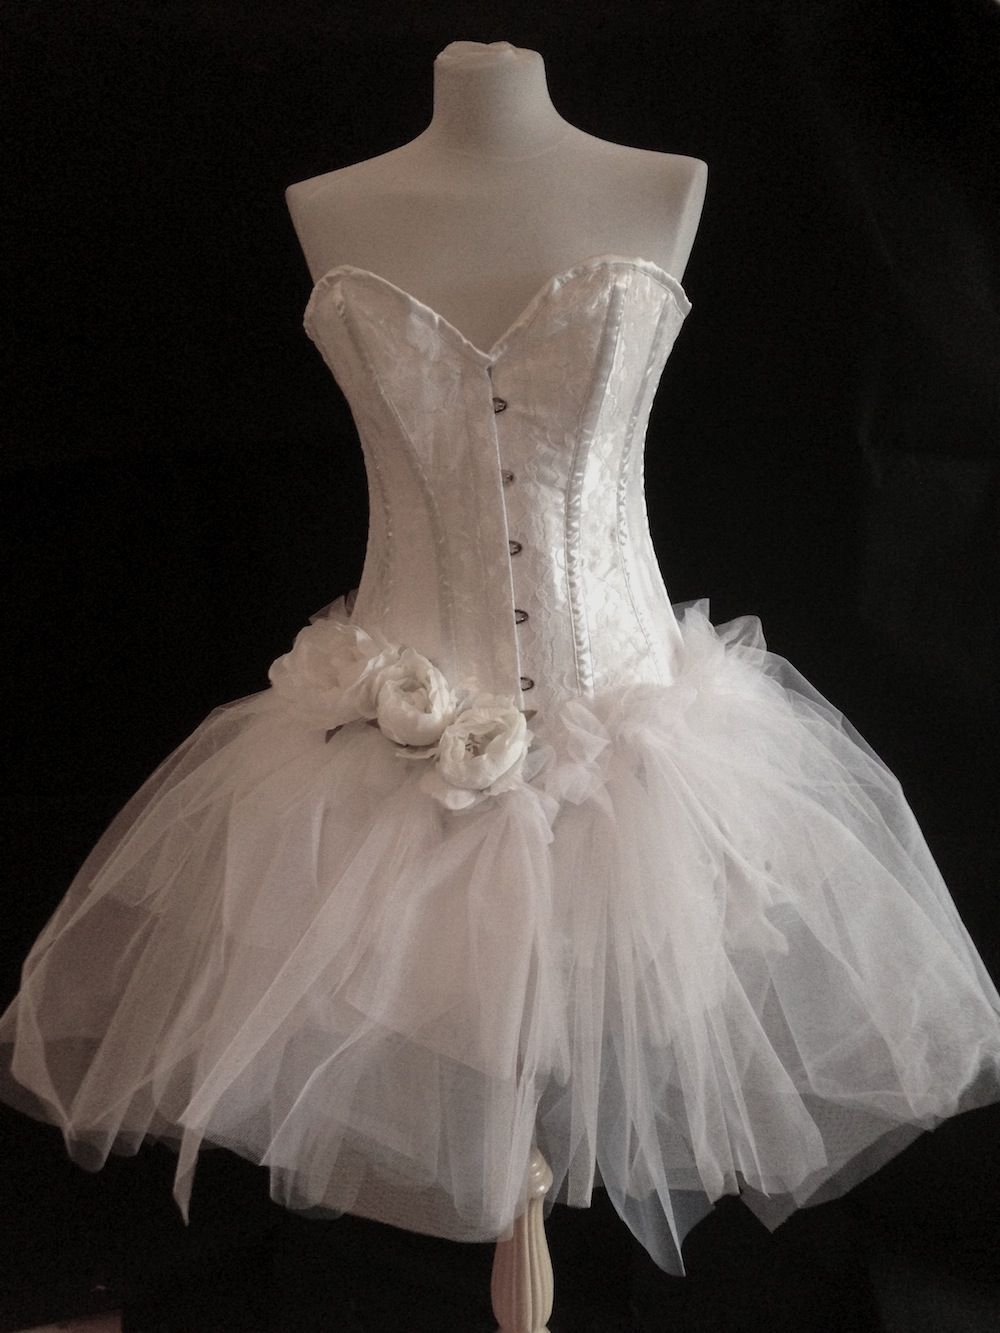 White burlesque corset dress white burlesque costume for White corset wedding dress